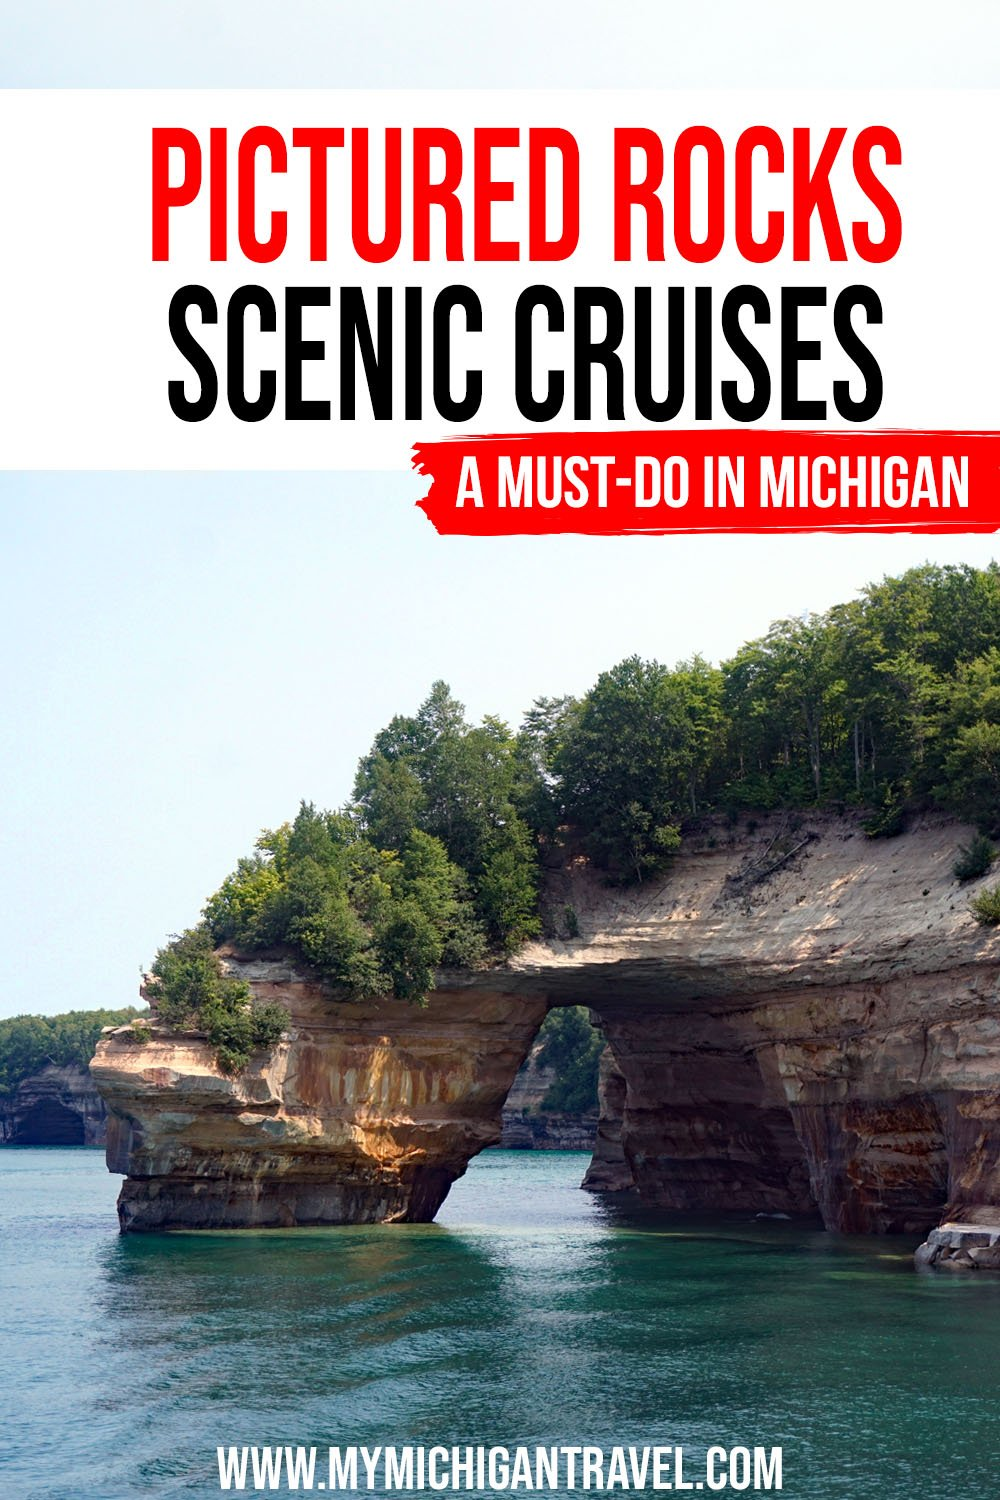 """Photo of Lovers Leap, a natural stone arch curving into Lake Superior, with text overlay reading """"Pictured Rocks scenic cruises - a must-do in Michigan"""""""